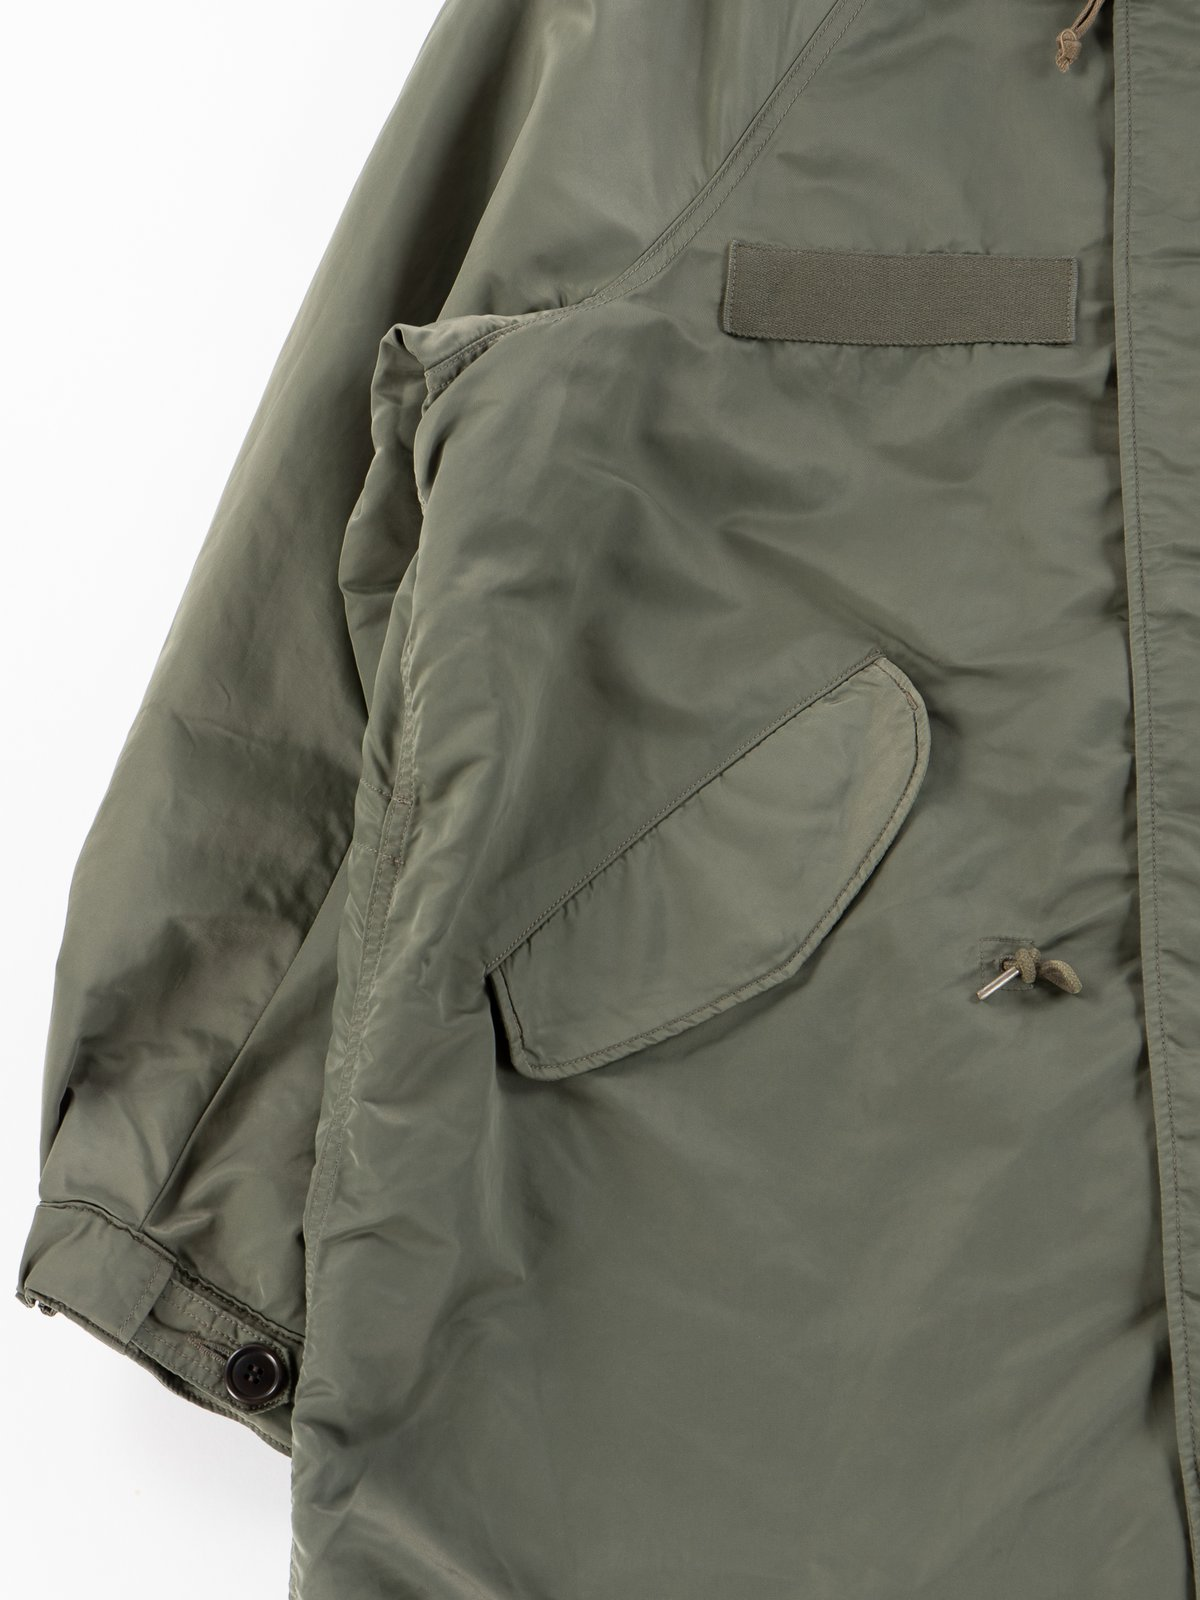 Olive Six–Five Fishtail Parka - Image 5